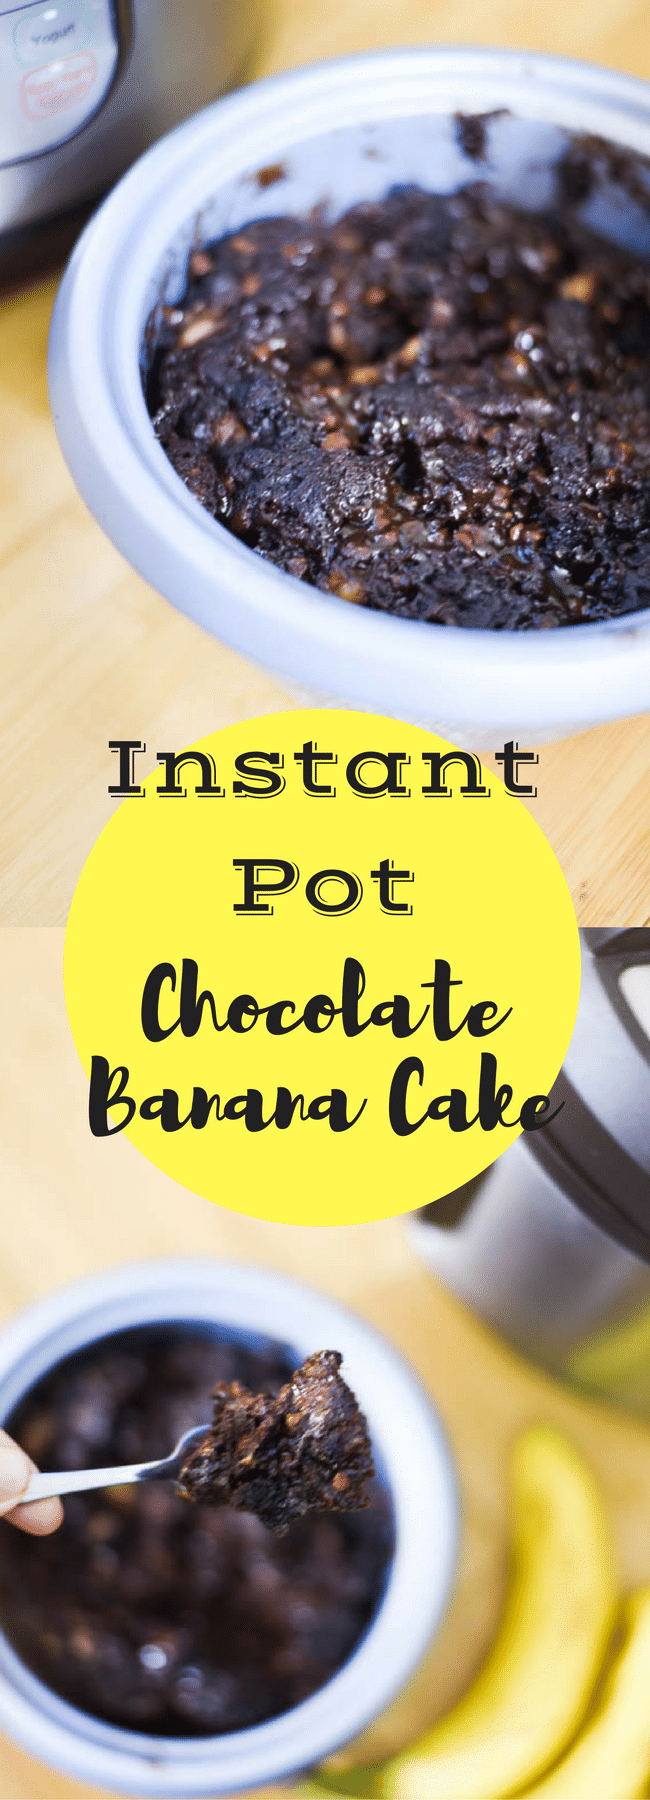 Instant Pot Chocolate Banana Cake / Instant Pot Recipes / Instant Pot Desserts / Instant Pot Quick Breads / Instant Pot Ideas